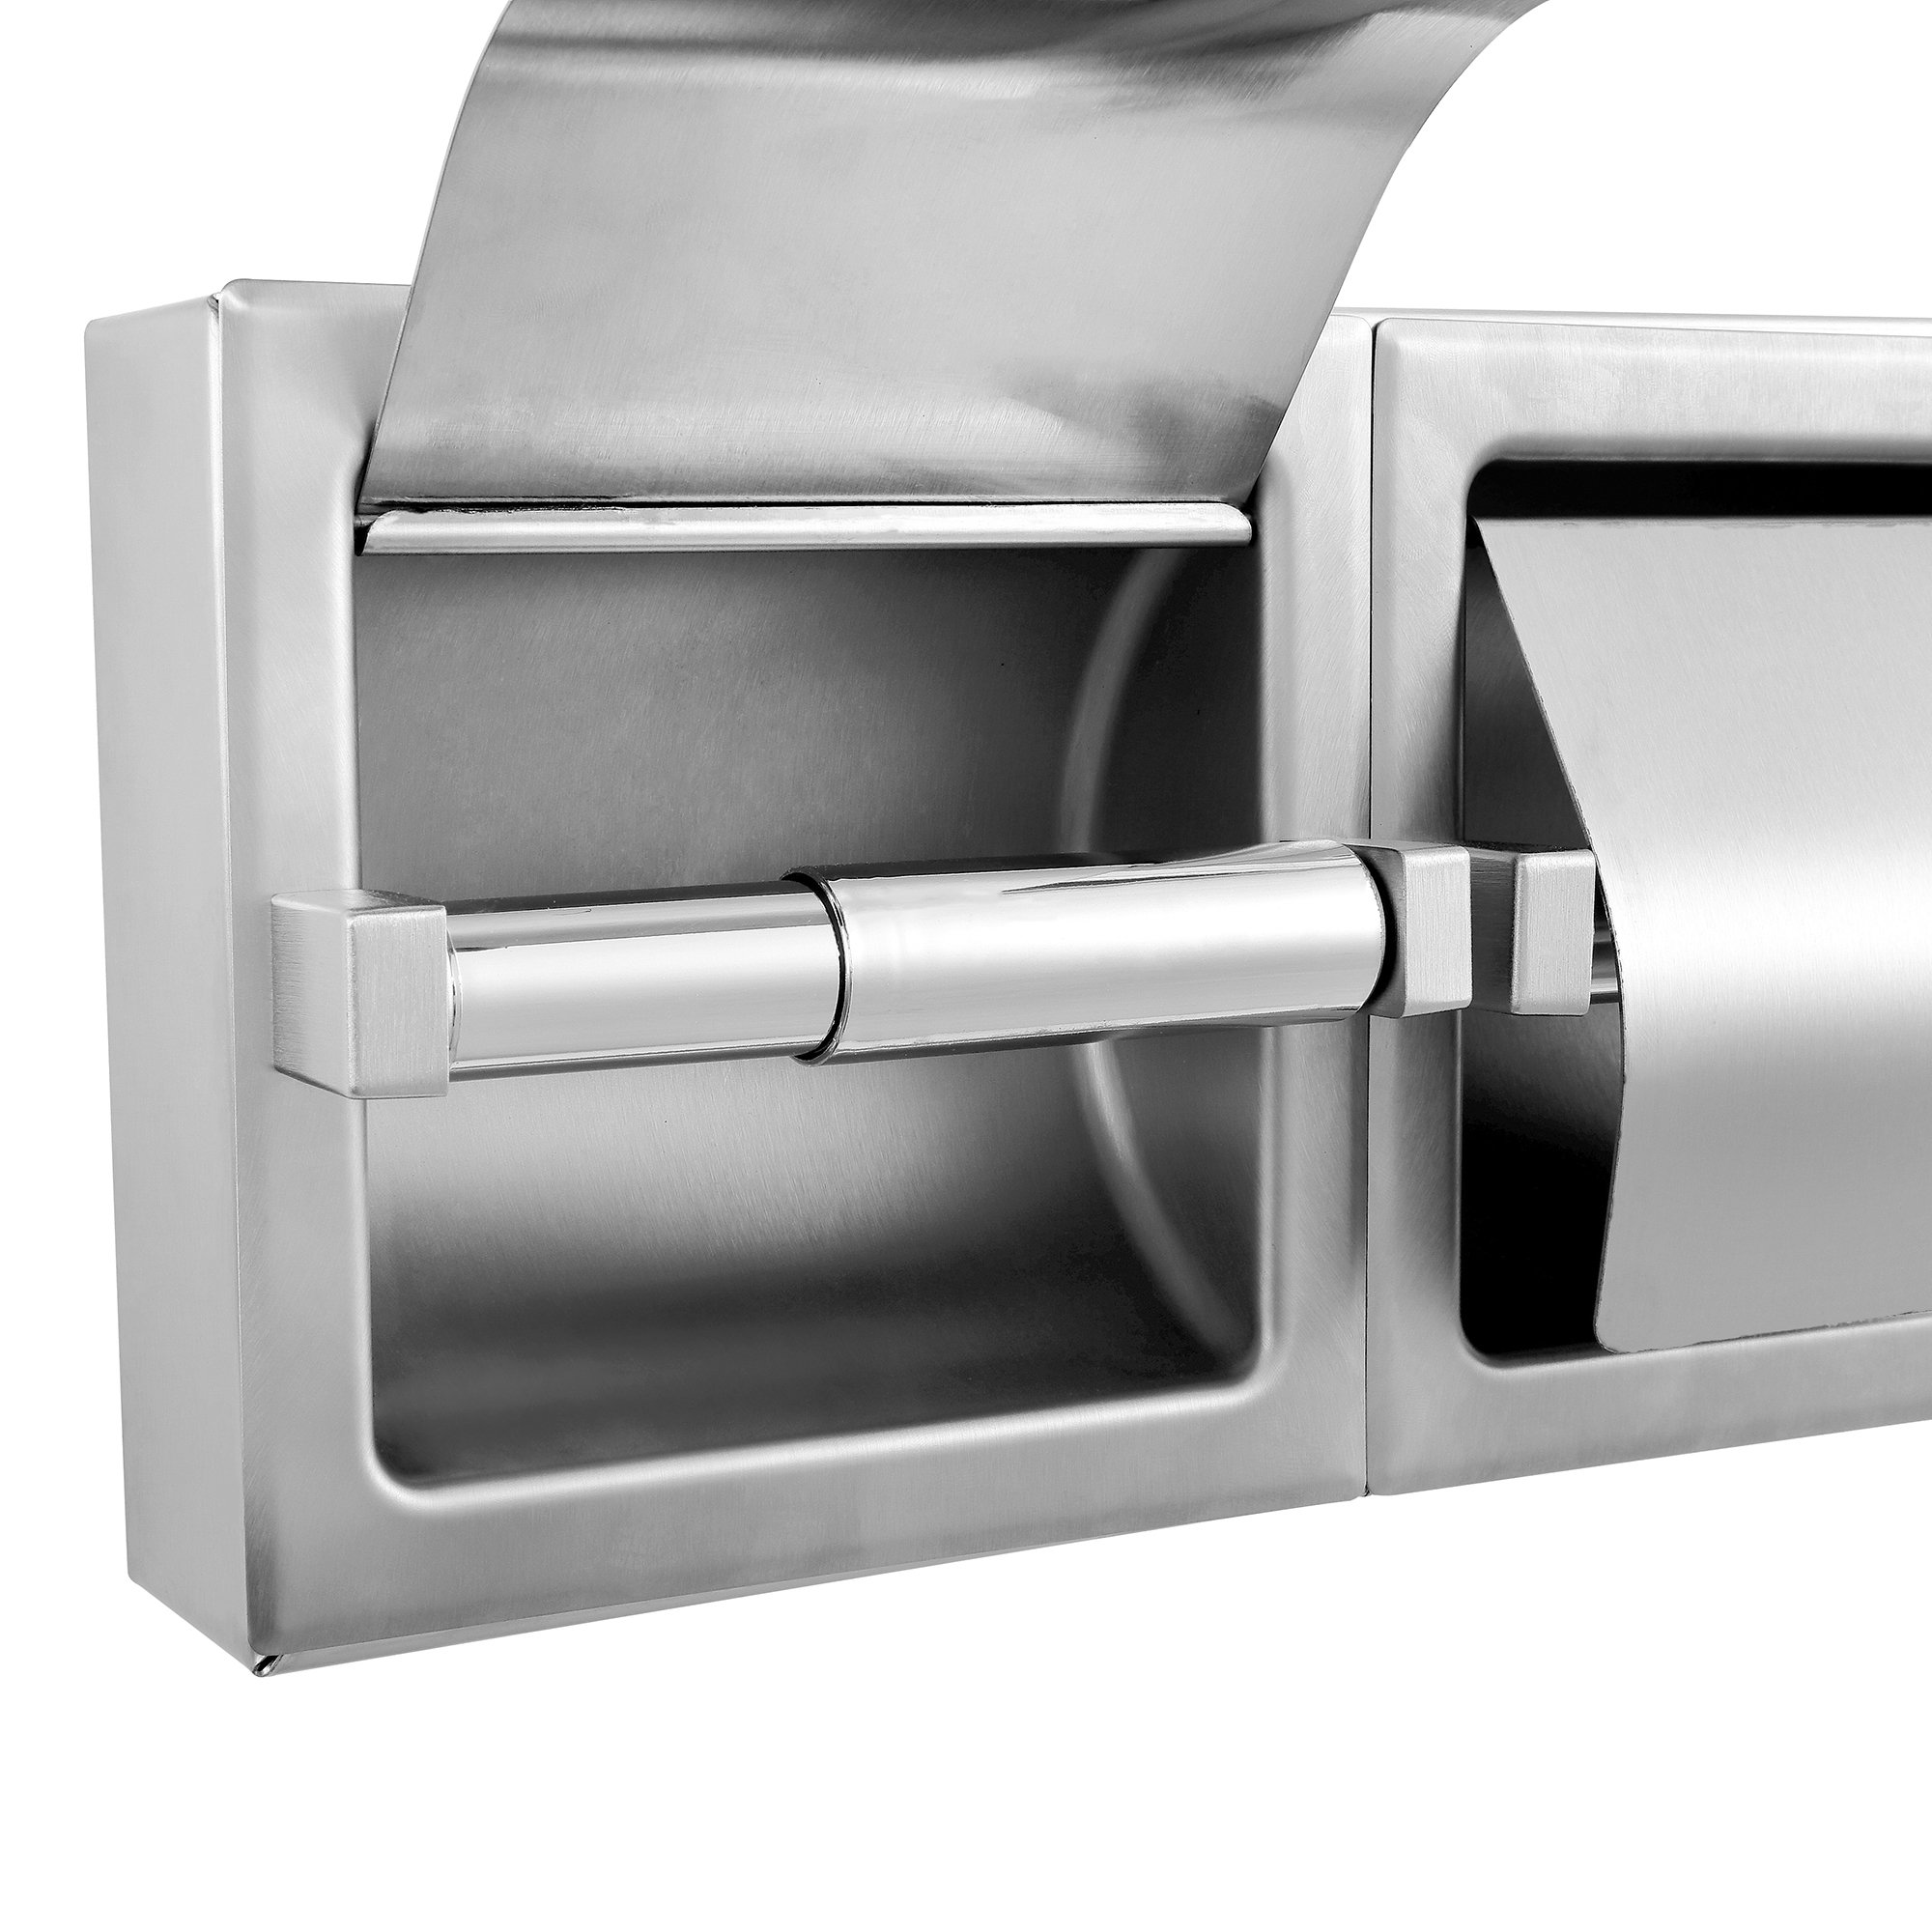 Dependable Direct Pack of 9 - Horizontal Two Roll Hooded Toilet Paper Holder - Stainless Steel - Satin Finish - Surface Mount by Dependable Direct (Image #3)